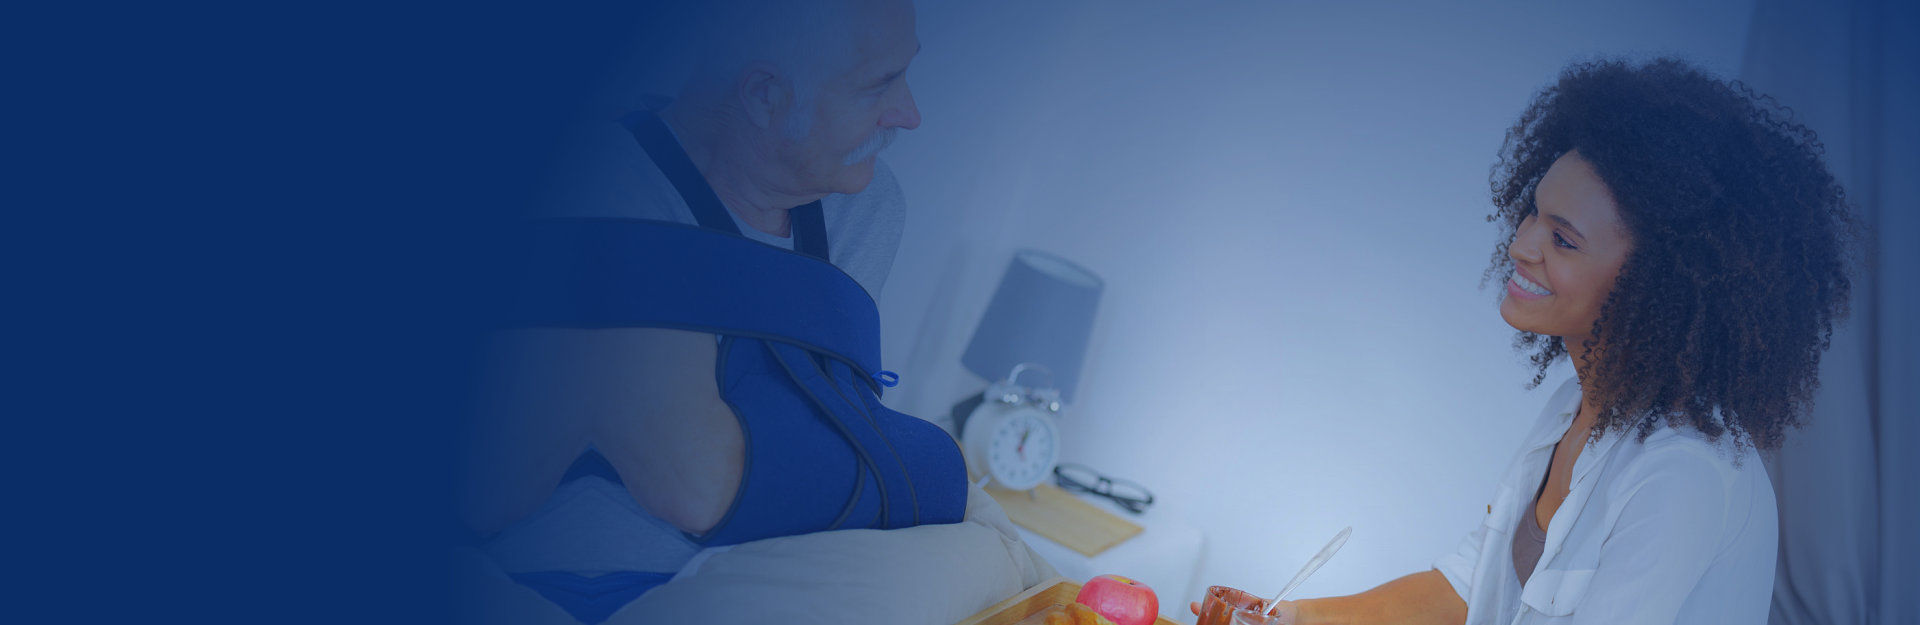 Caregiver is serving meal to her patient